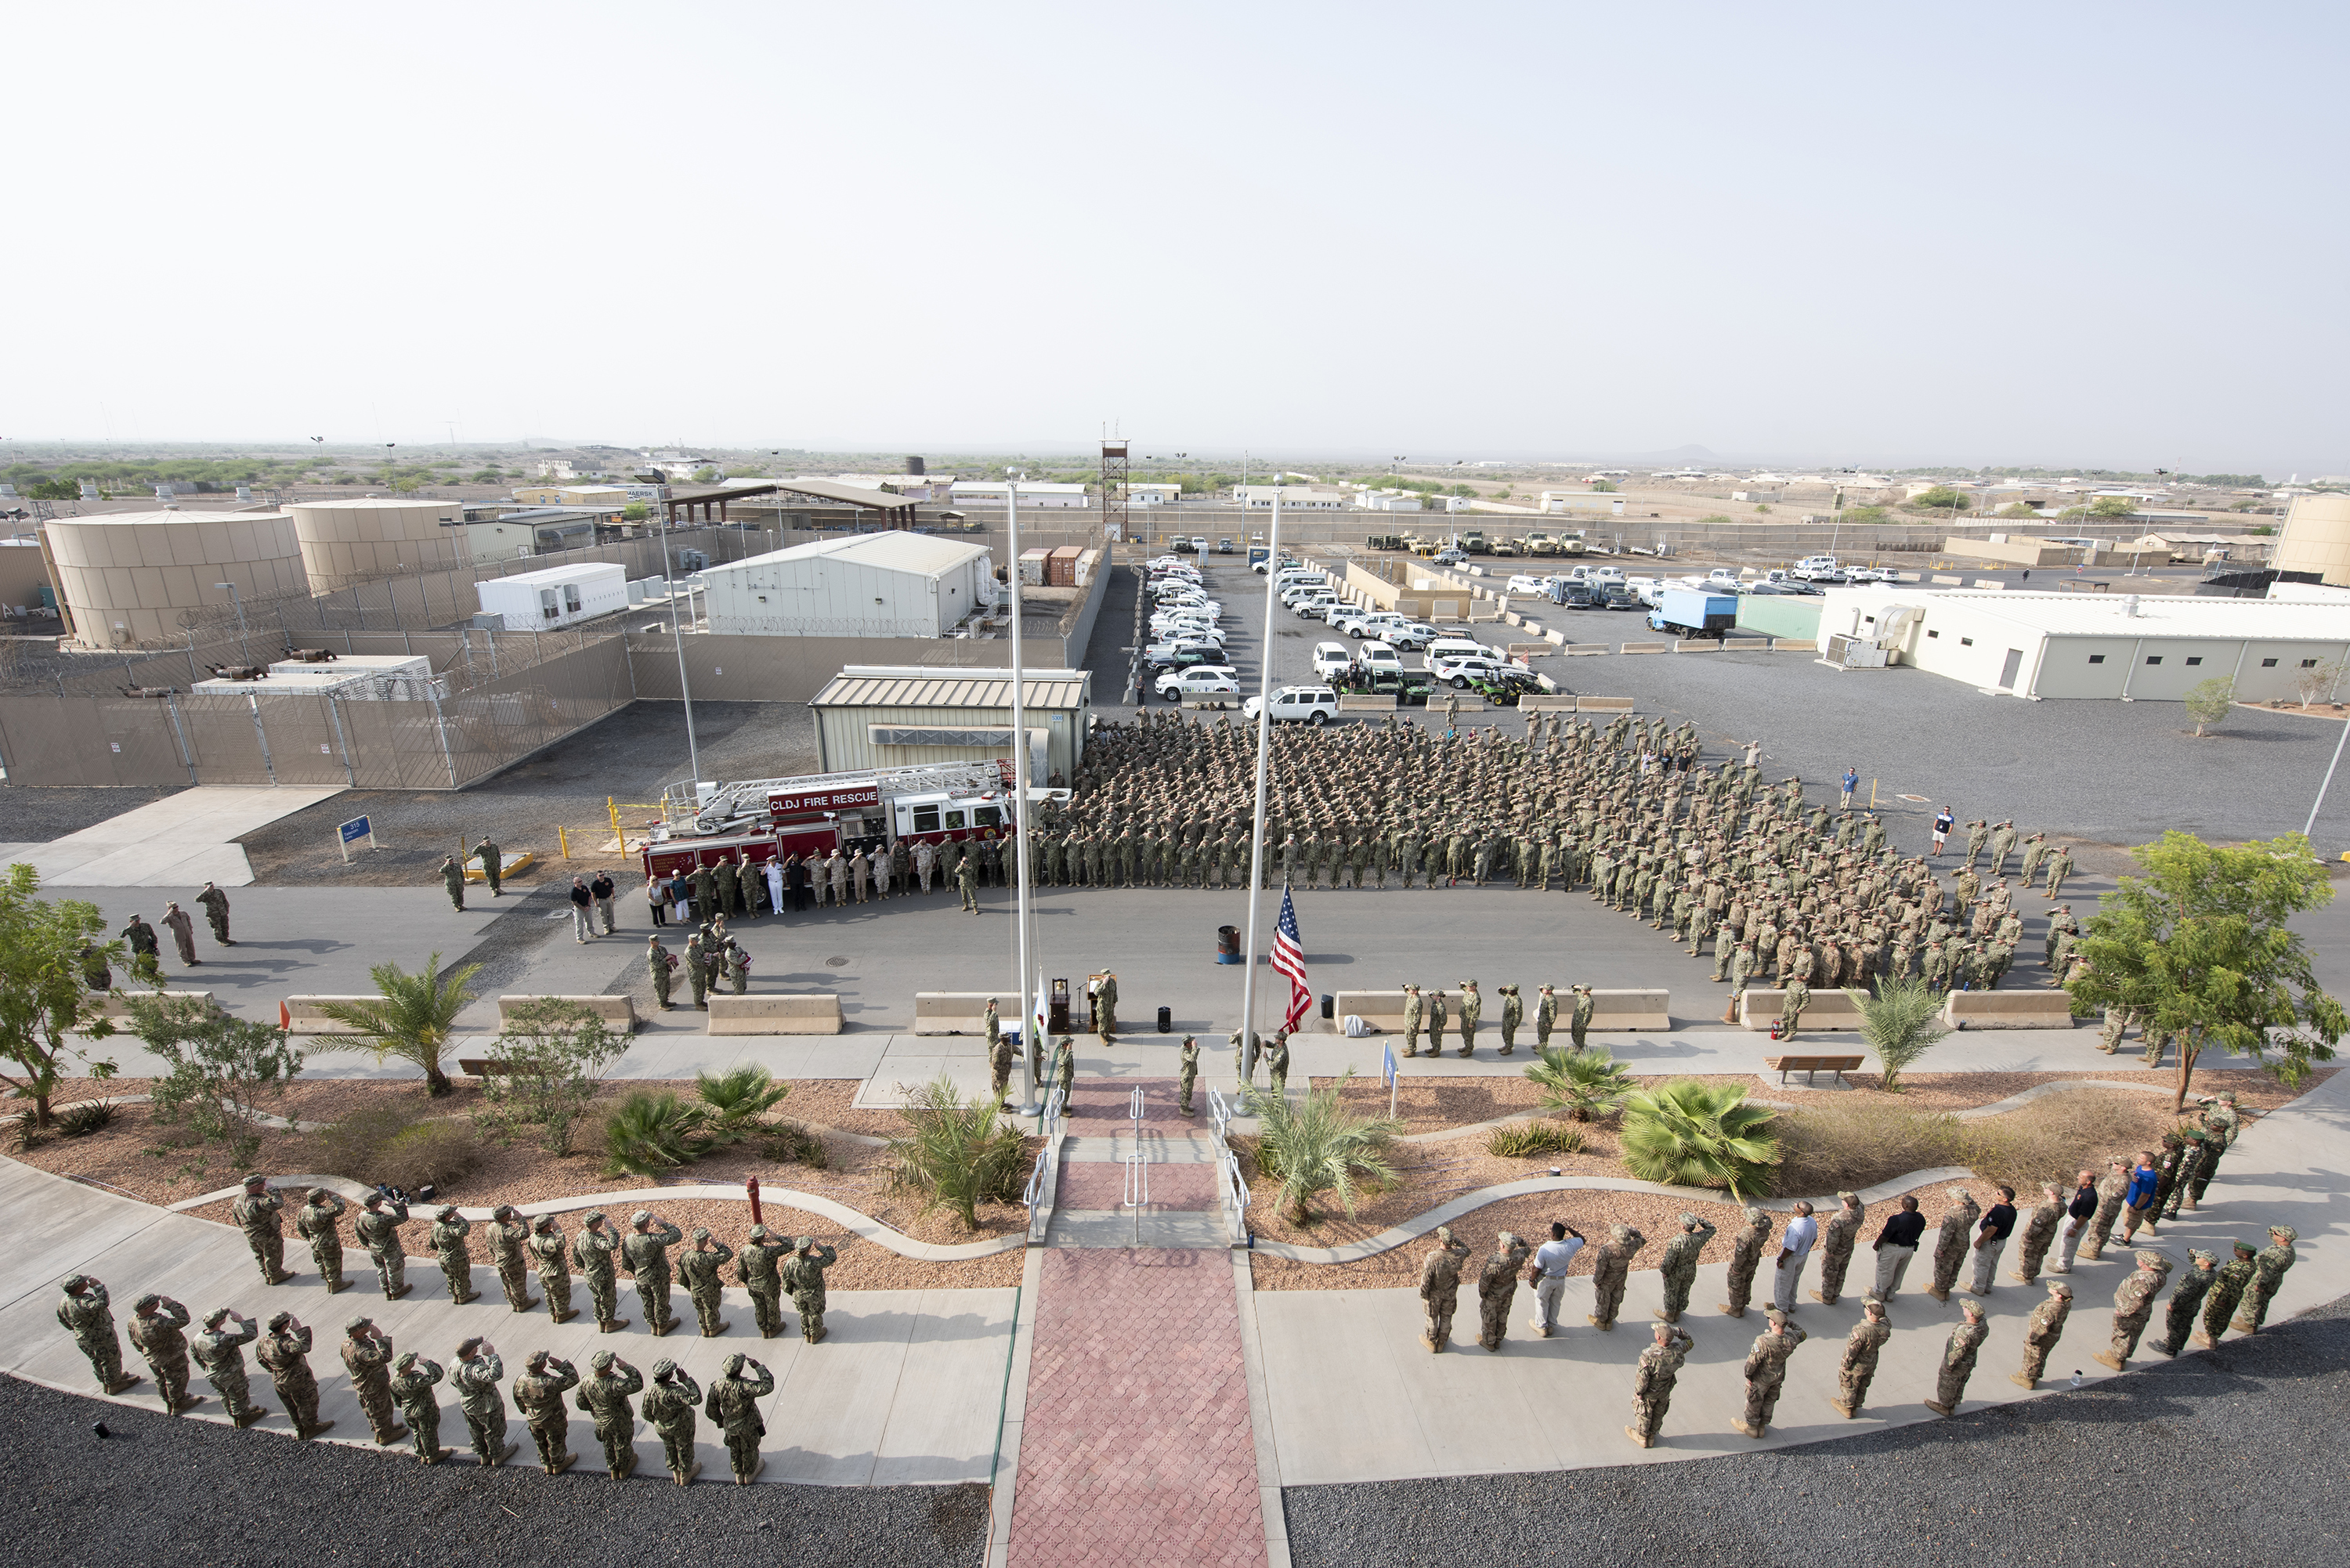 U.S. service members salute as the American and Djiboutian flags are raised on Camp Lemonnier, Djibouti, Sept. 11, 2018. The service members were gathered for a 9/11 remembrance ceremony to recognize those who lost their lives 17 years ago. (U.S. Air National Guard photo by Master Sgt. Sarah Mattison)